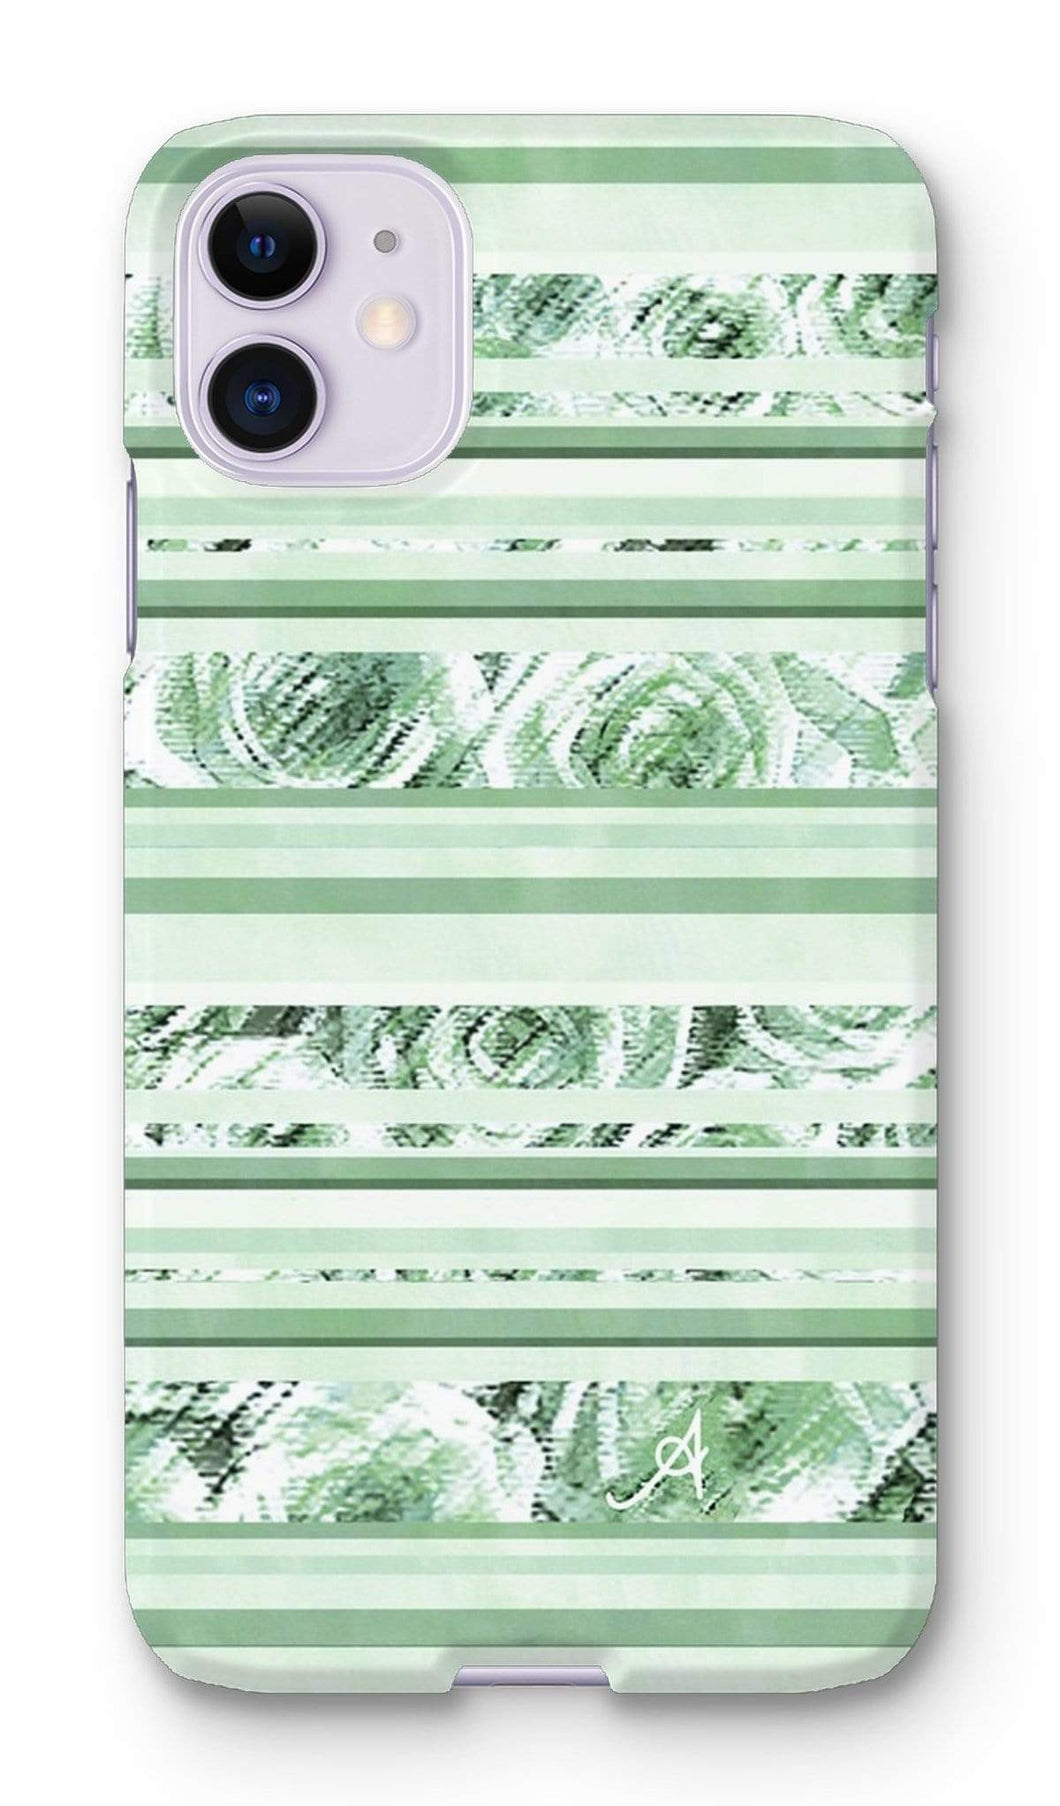 Phone & Tablet Cases iPhone 11 / Snap / Gloss Textured Roses Stripe Mint Amanya Design Phone Case Prodigi